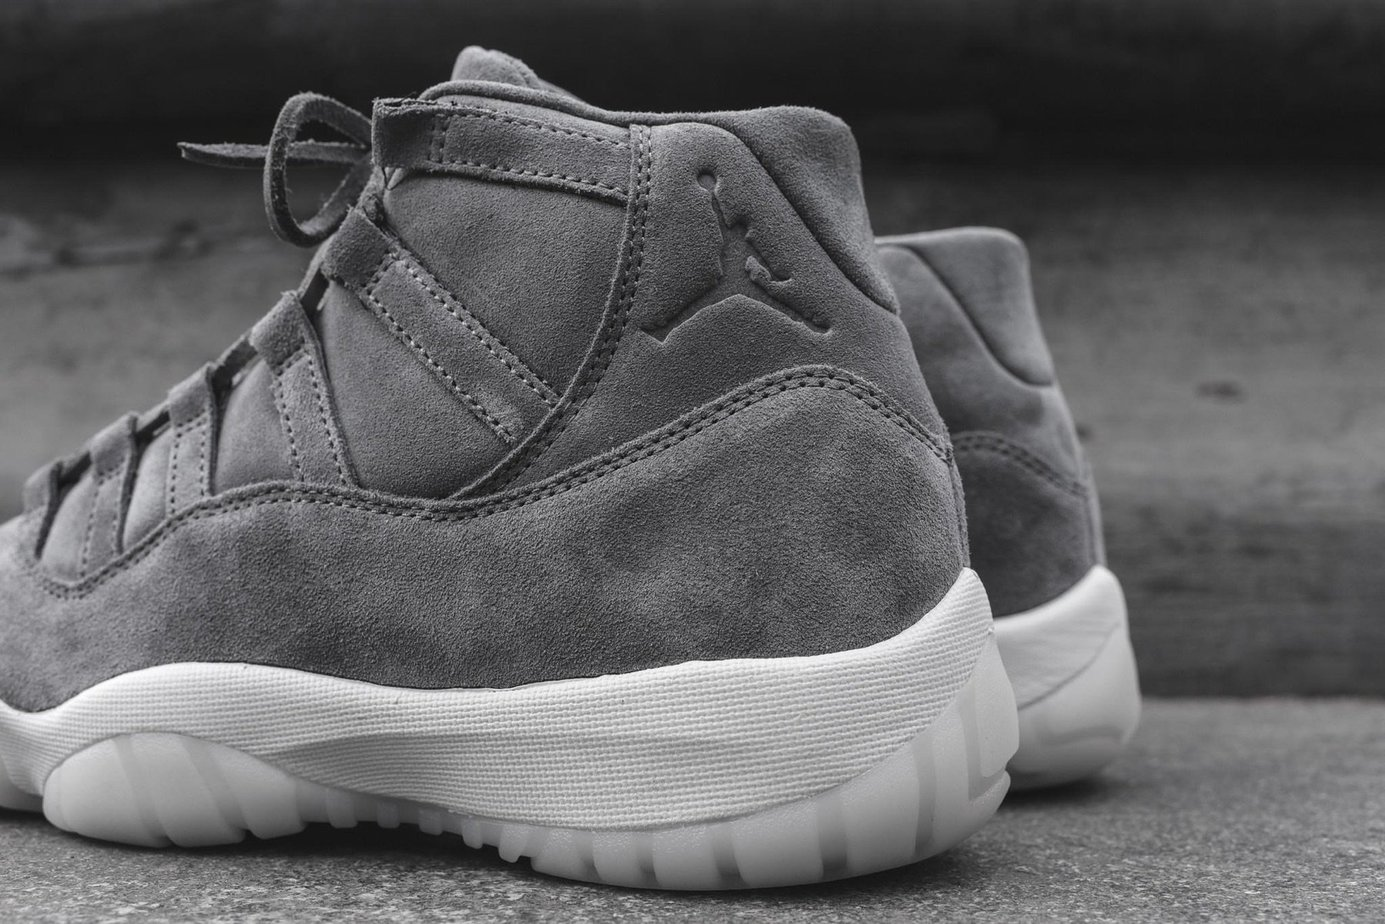 59de8bd5c1e535 Air Jordan 11 Pinnacle Grey Suede Now Available - JustFreshKicks